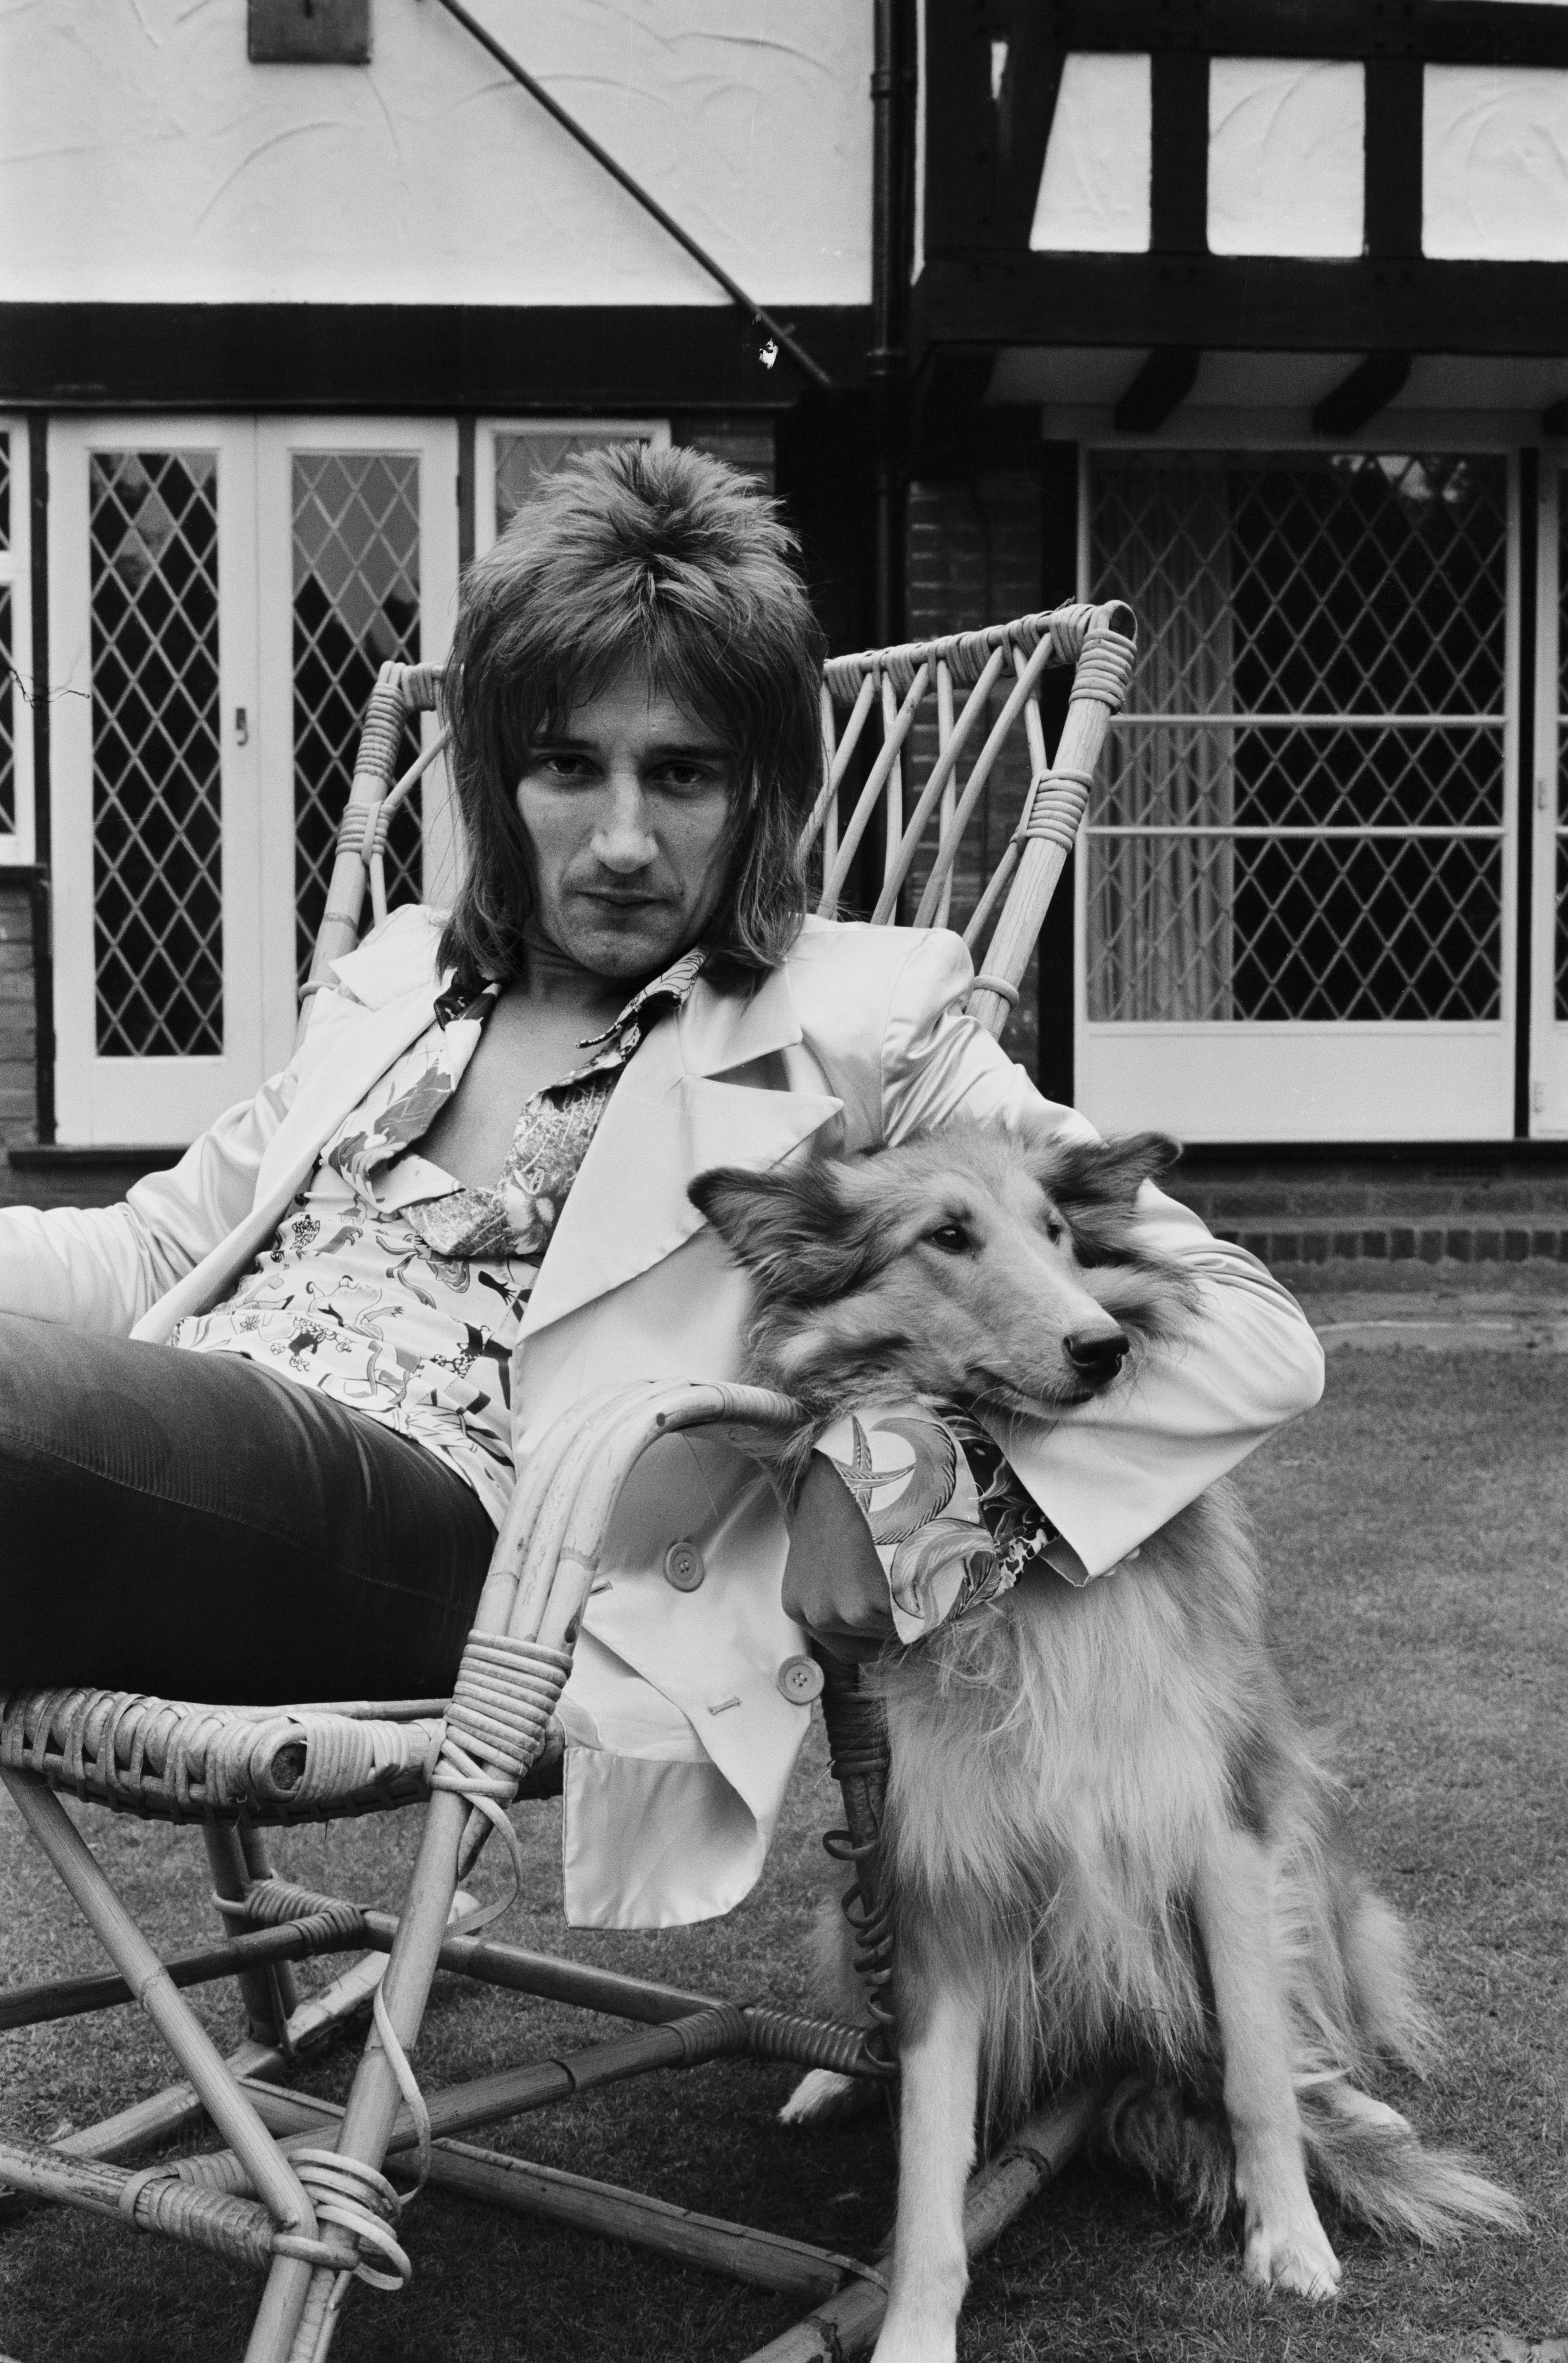 British rock singer Rod Stewart with one of his dogs, UK, 12th September 1971.  (Photo by Victor Blackman/Express/Hulton Archive/Getty Images)